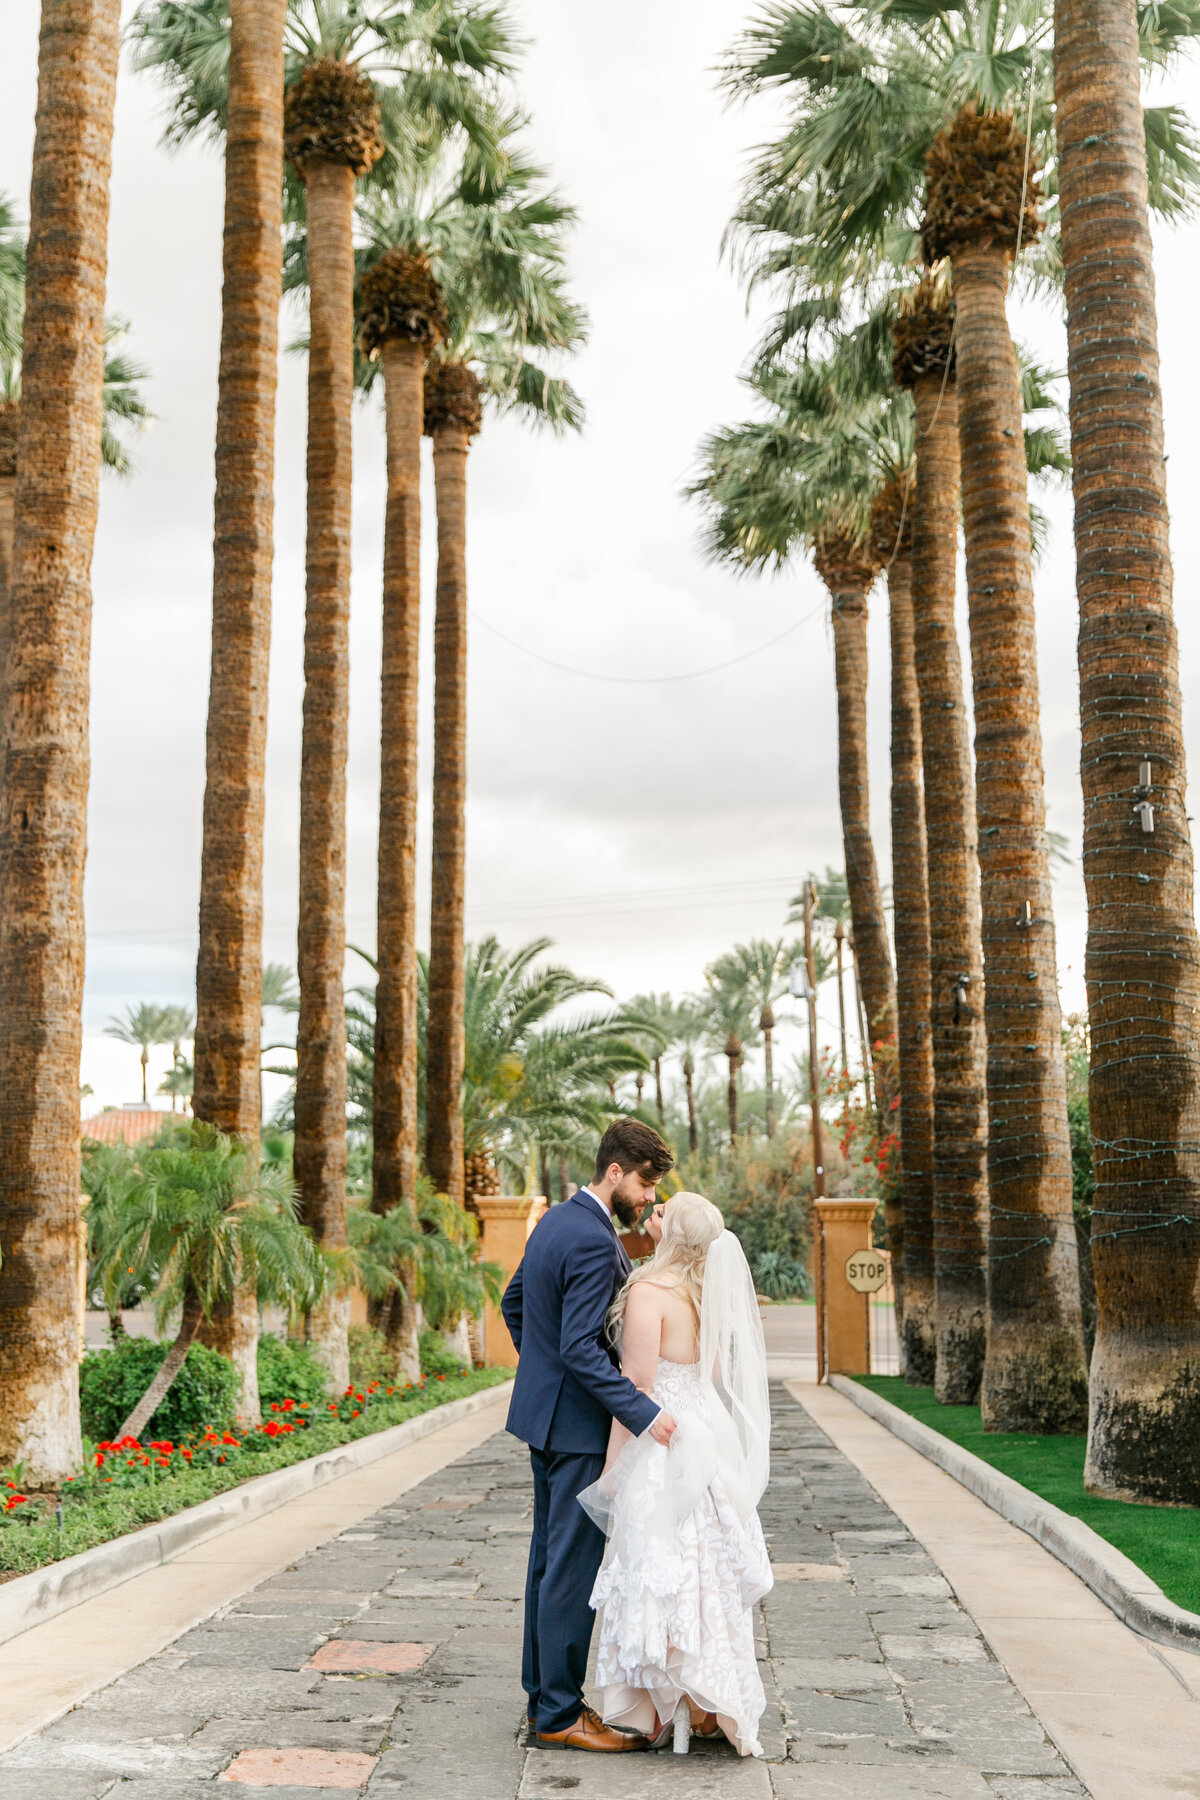 Karlie Colleen Photography - The Royal Palms Wedding - Some Like It Classic - Alex & Sam-574